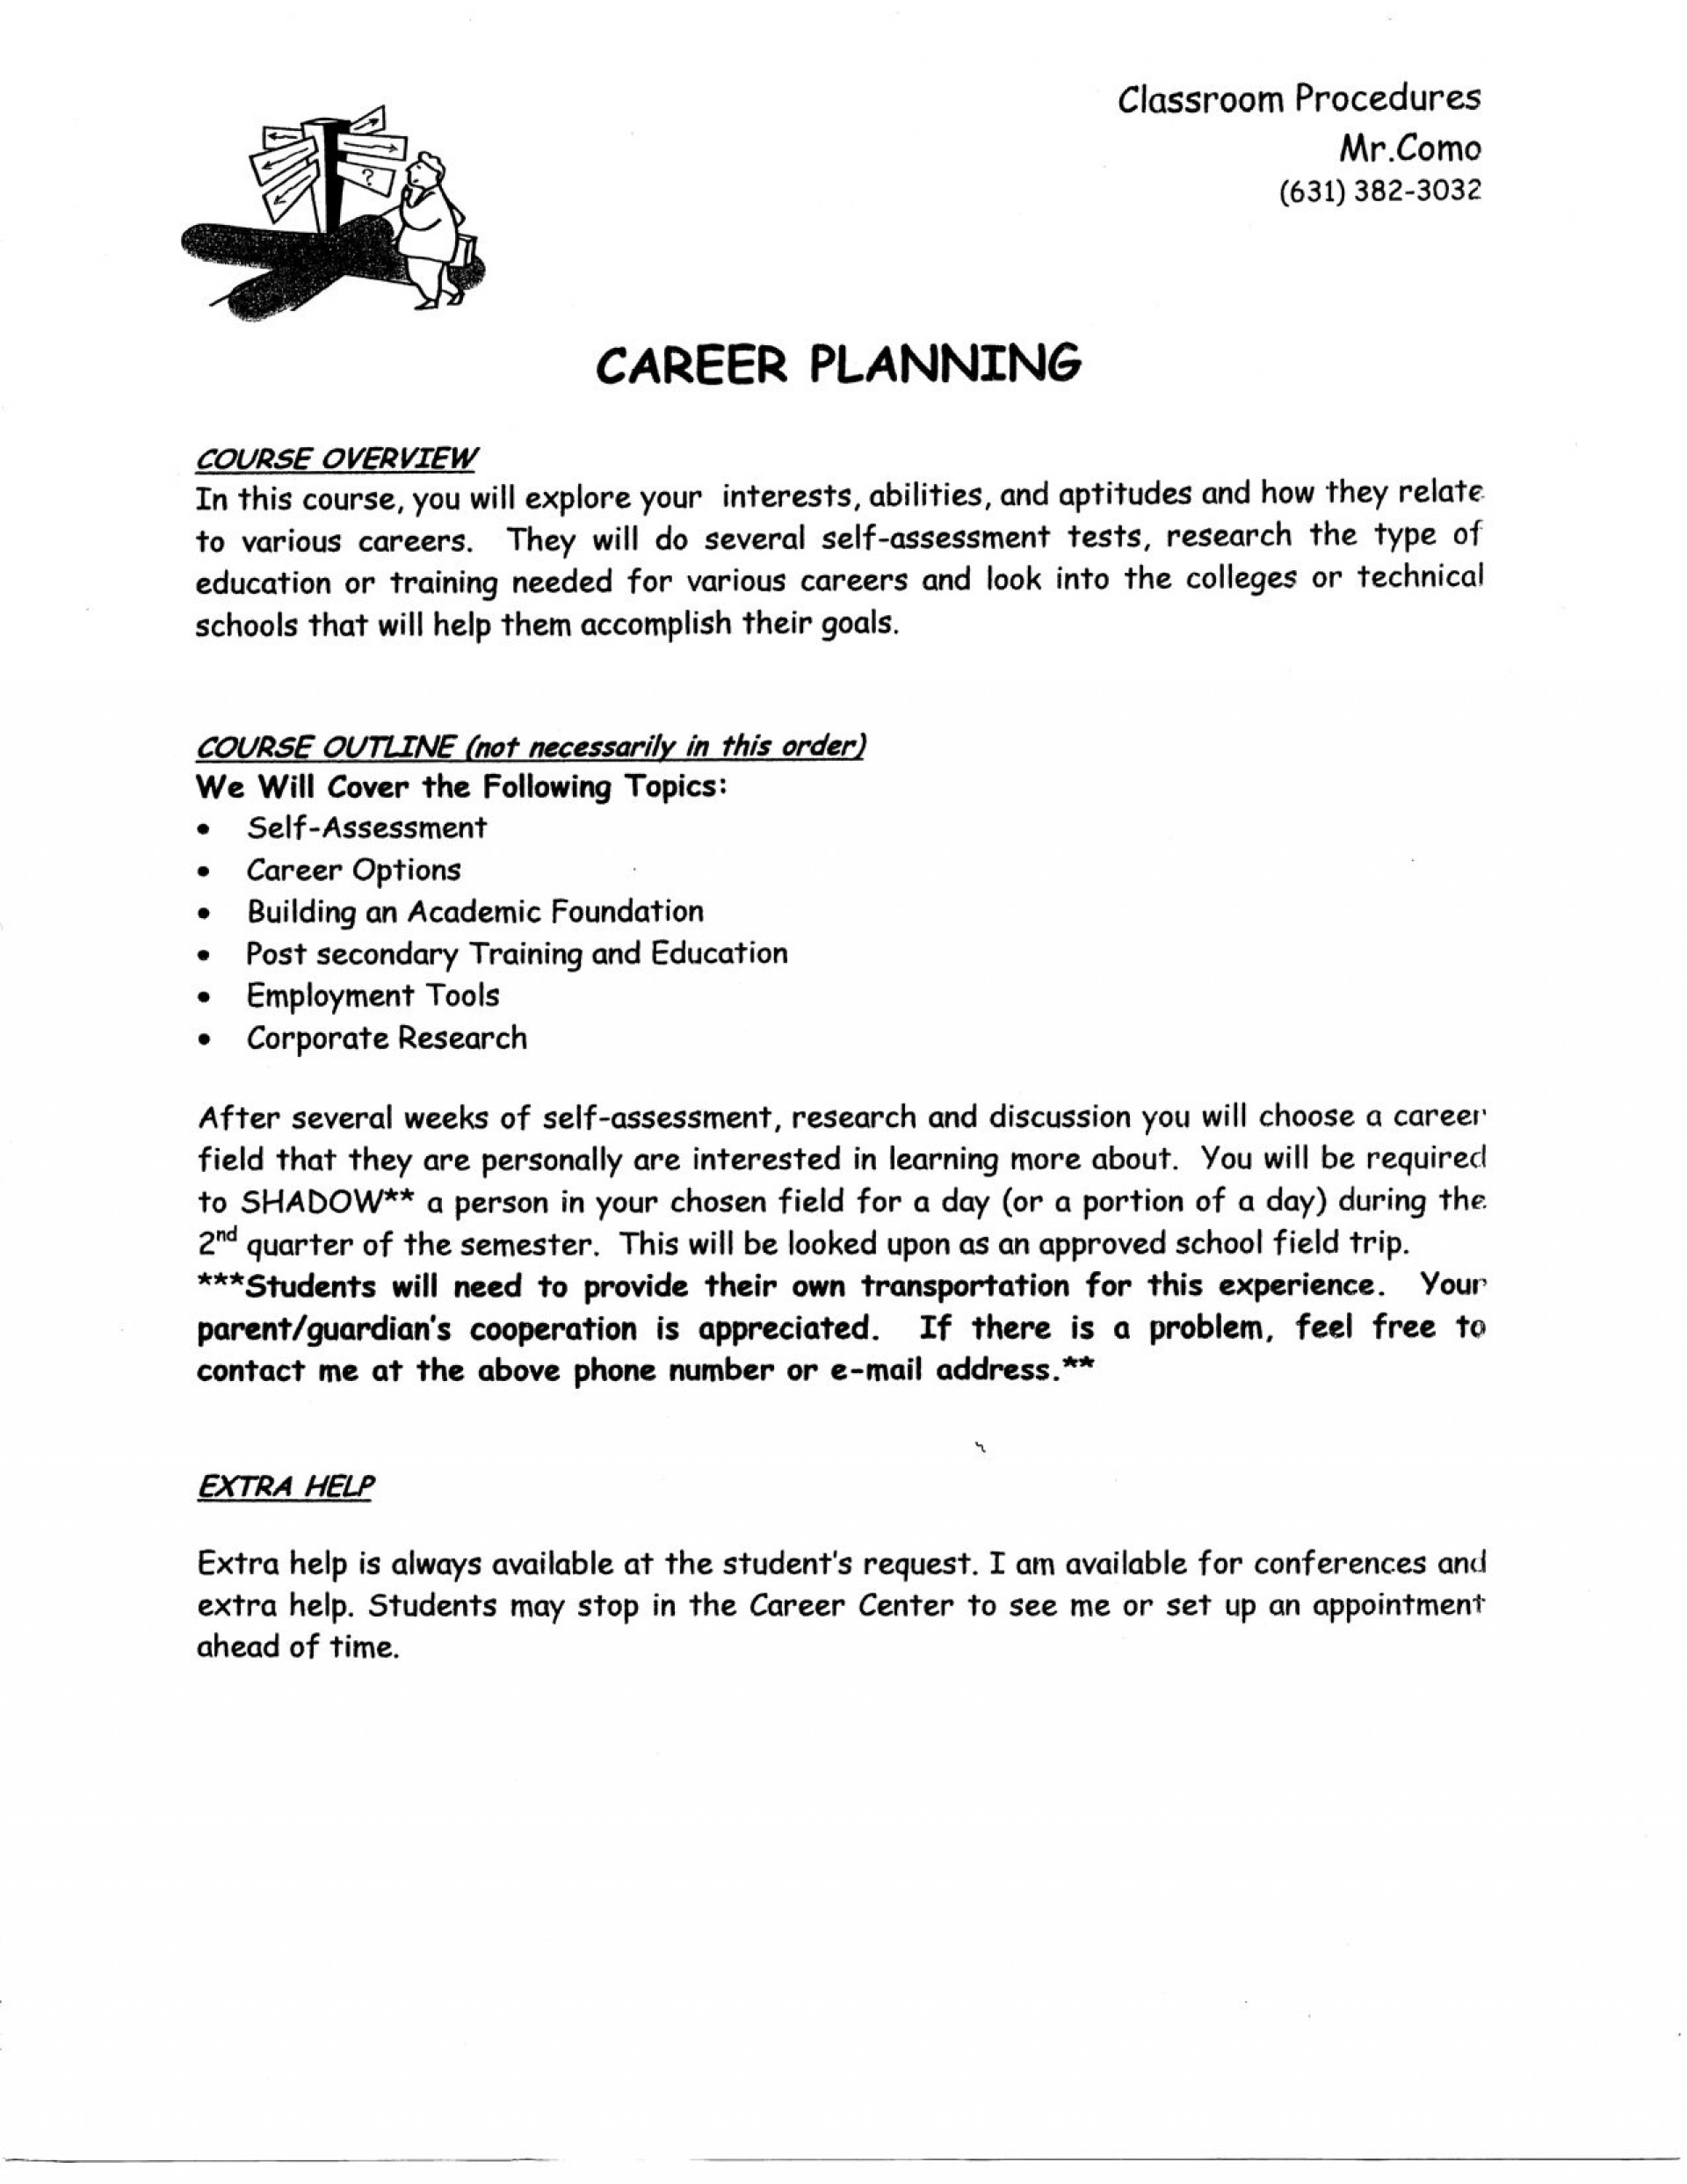 012 Essay Plan Career Planning002 Stirring Template Word Planning Sheet Critical 1920